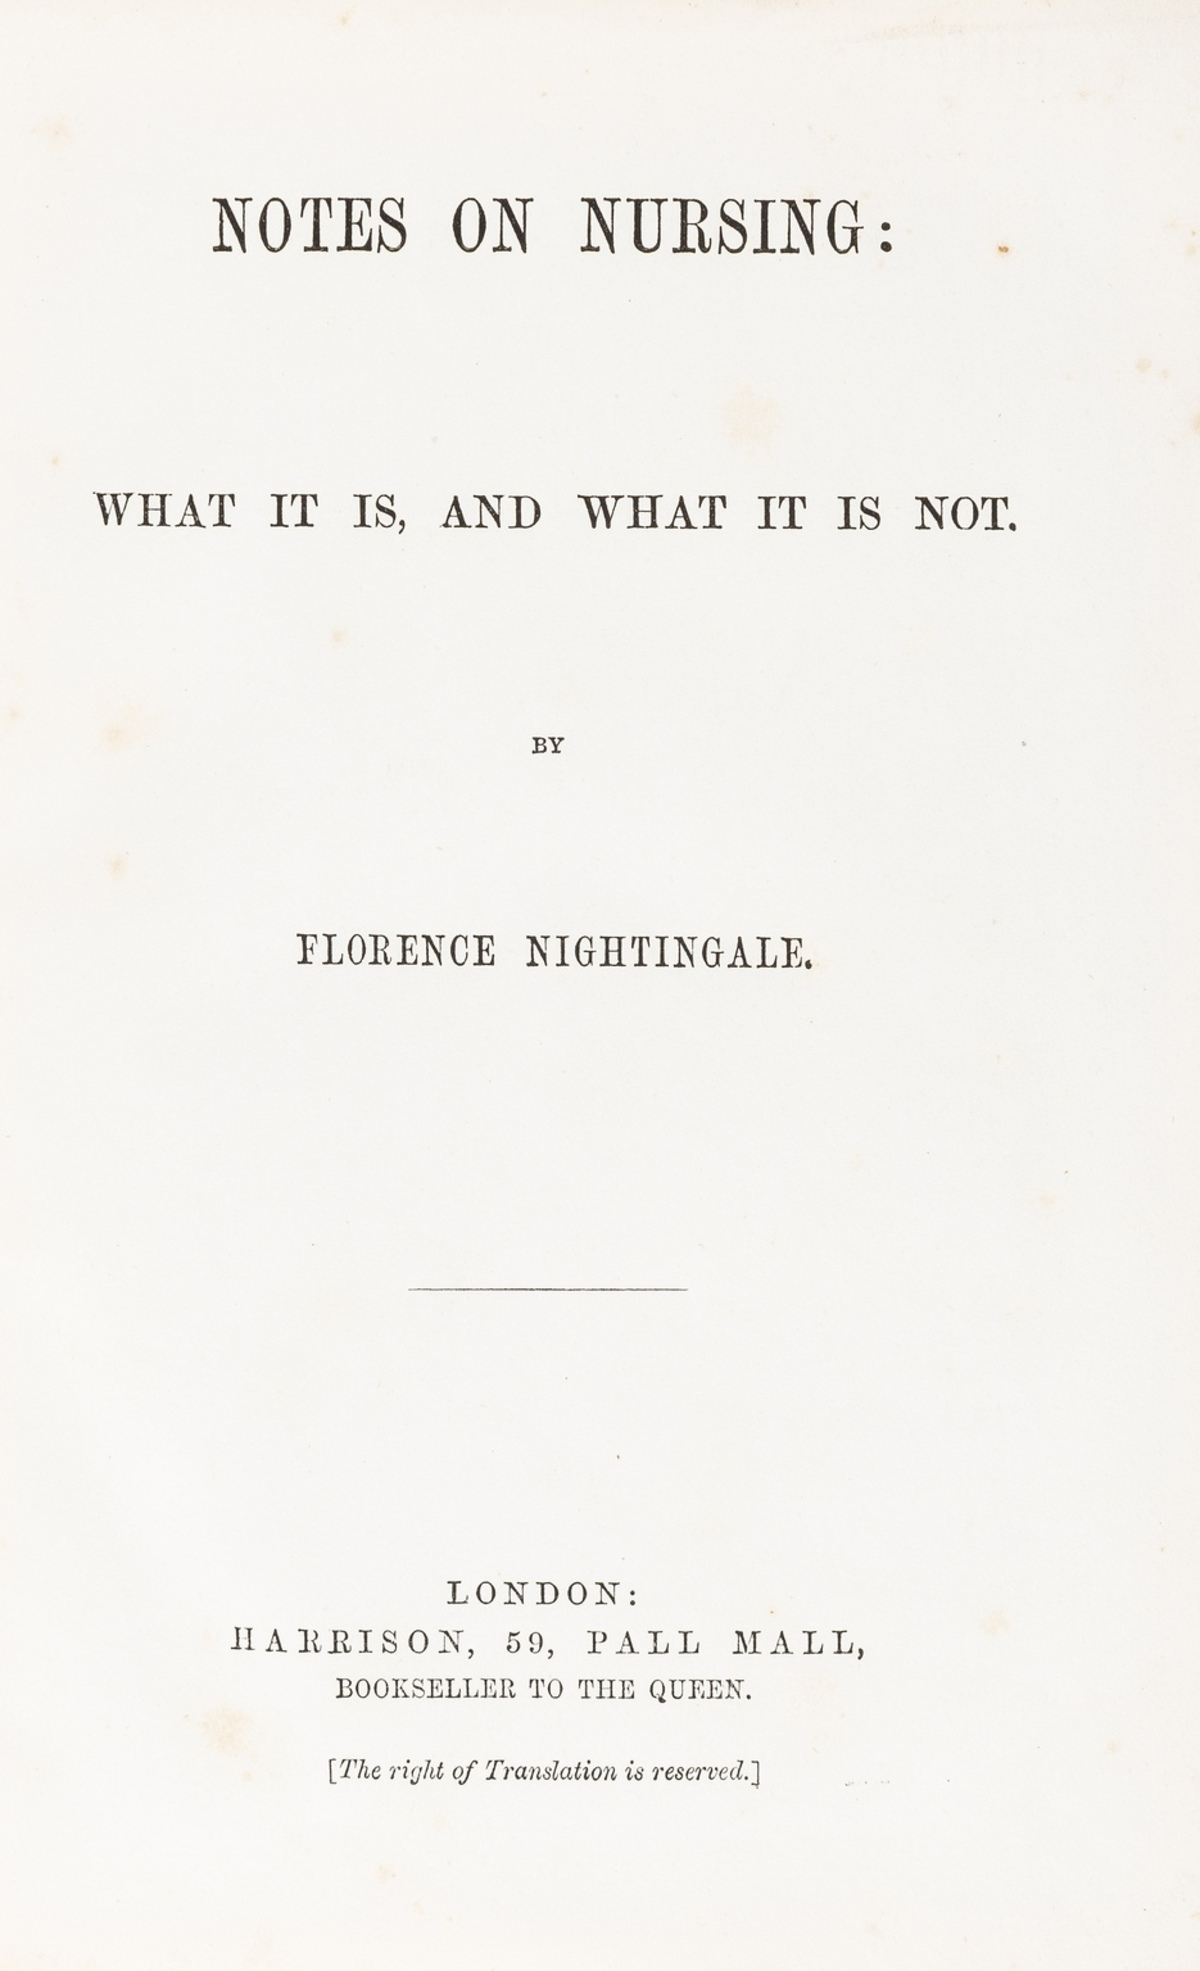 Nightingale (Florence) Notes on Nursing: What It Is, and What It Is Not, first edition, [1860].